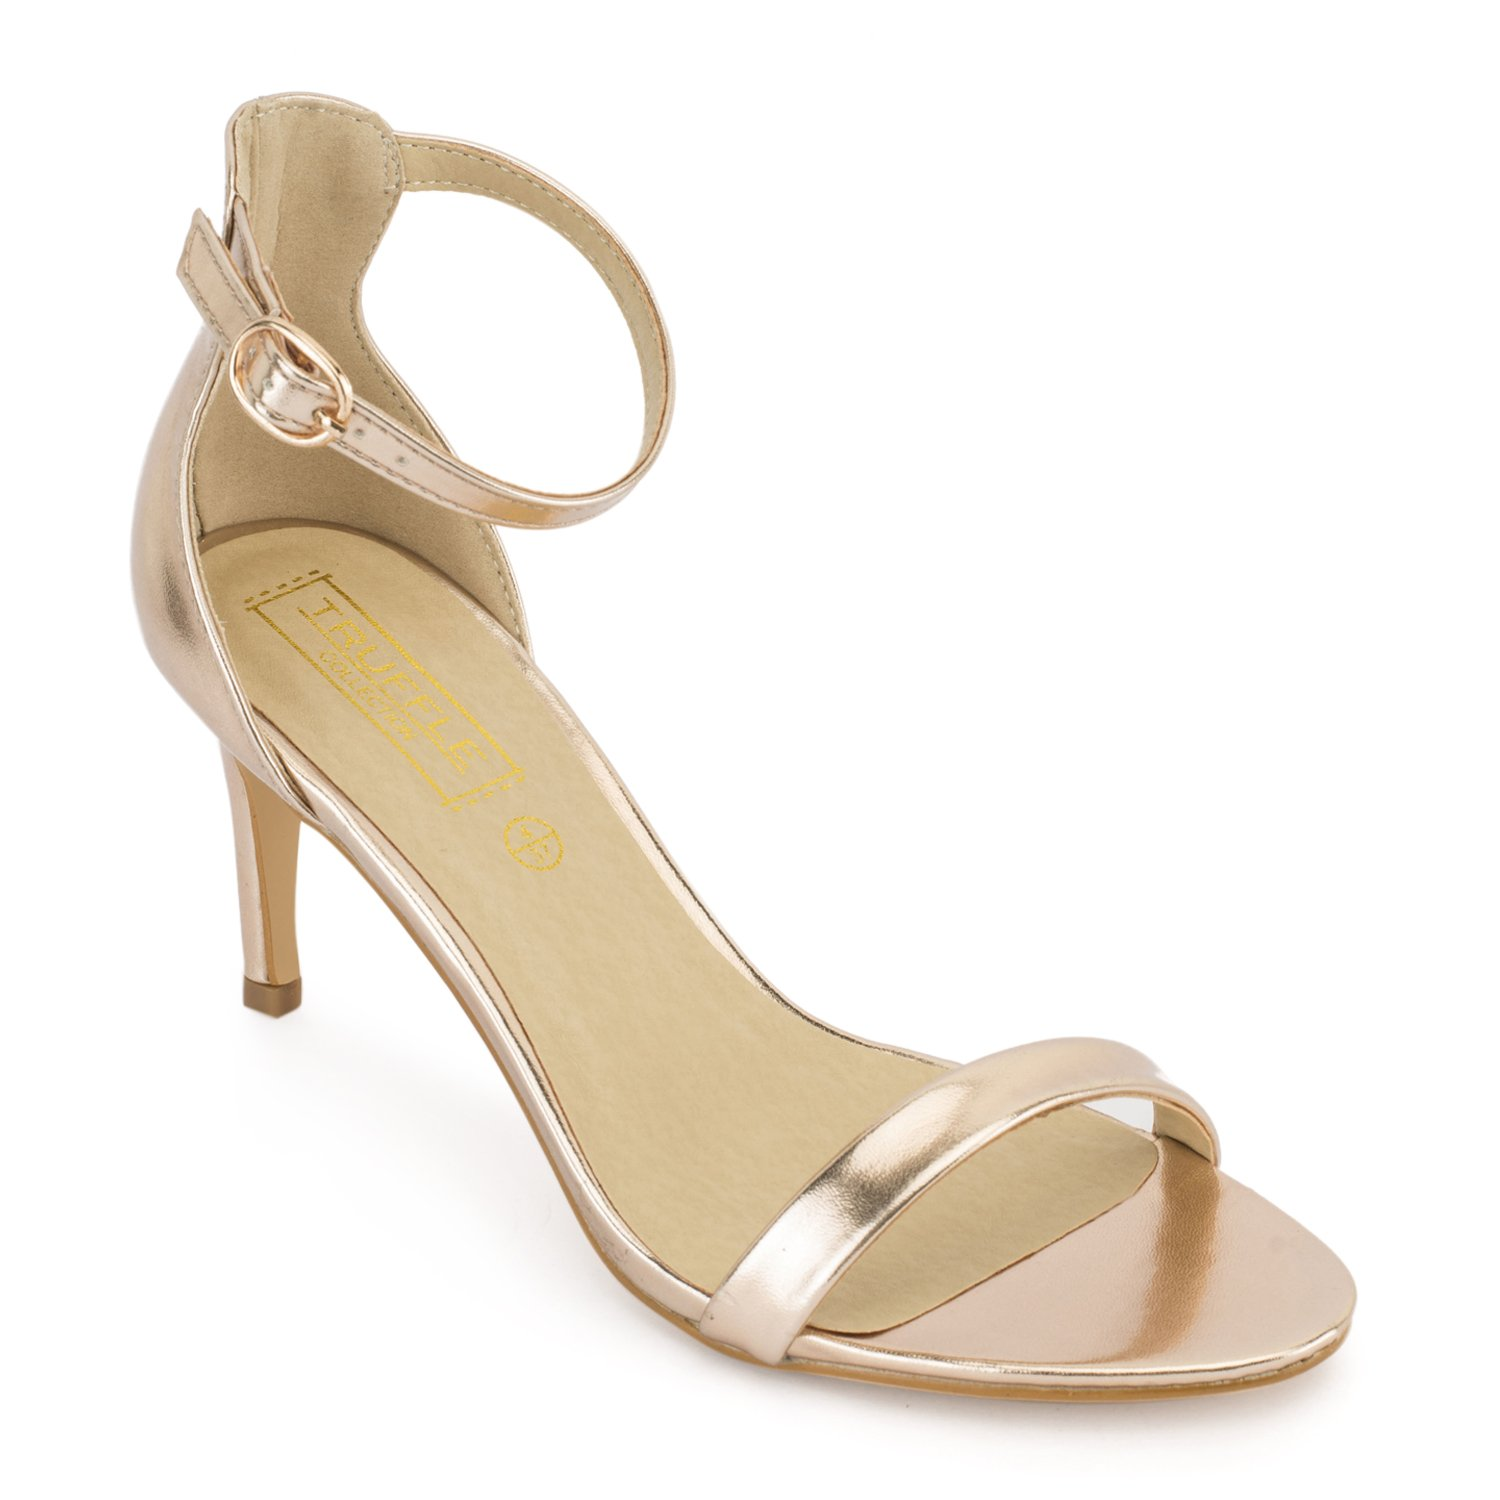 c73845f4f162 TRUFFLE COLLECTION Rosegold Barely There Low Heel Sandals  Buy Online at Low  Prices in India - Amazon.in